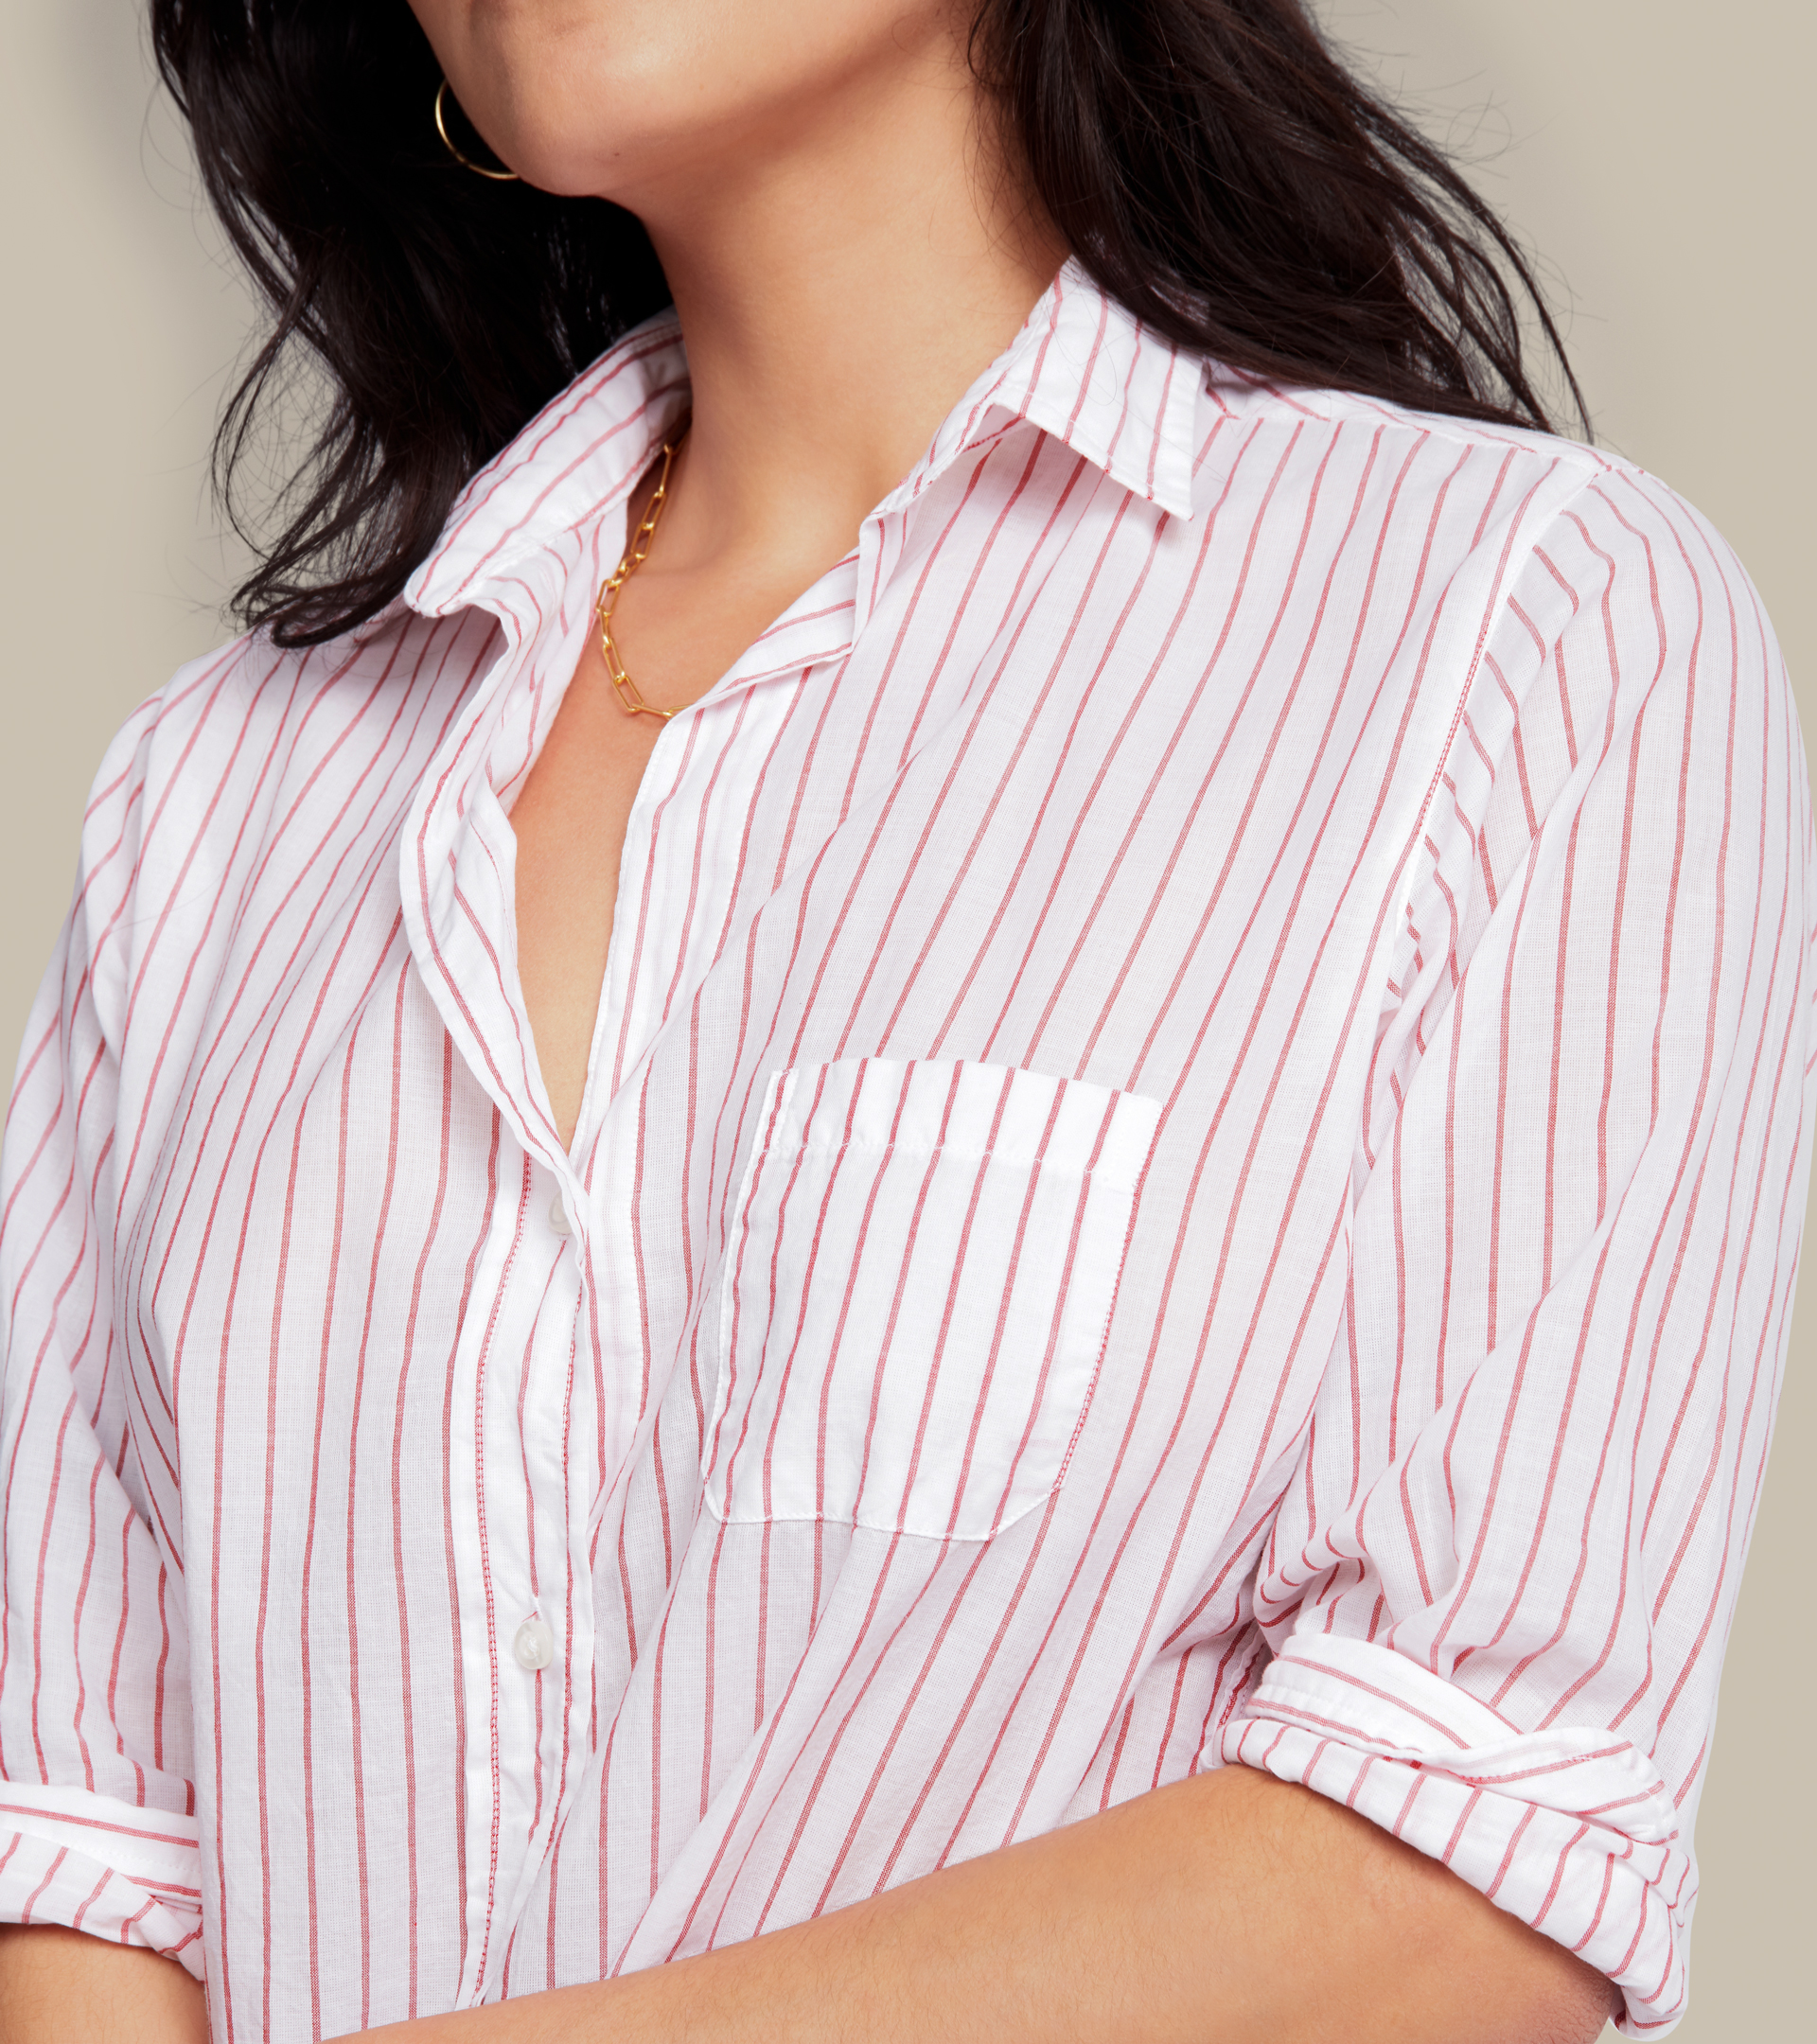 Image of The Hero Button-Up Shirt Red Stripes, Tissue Cotton